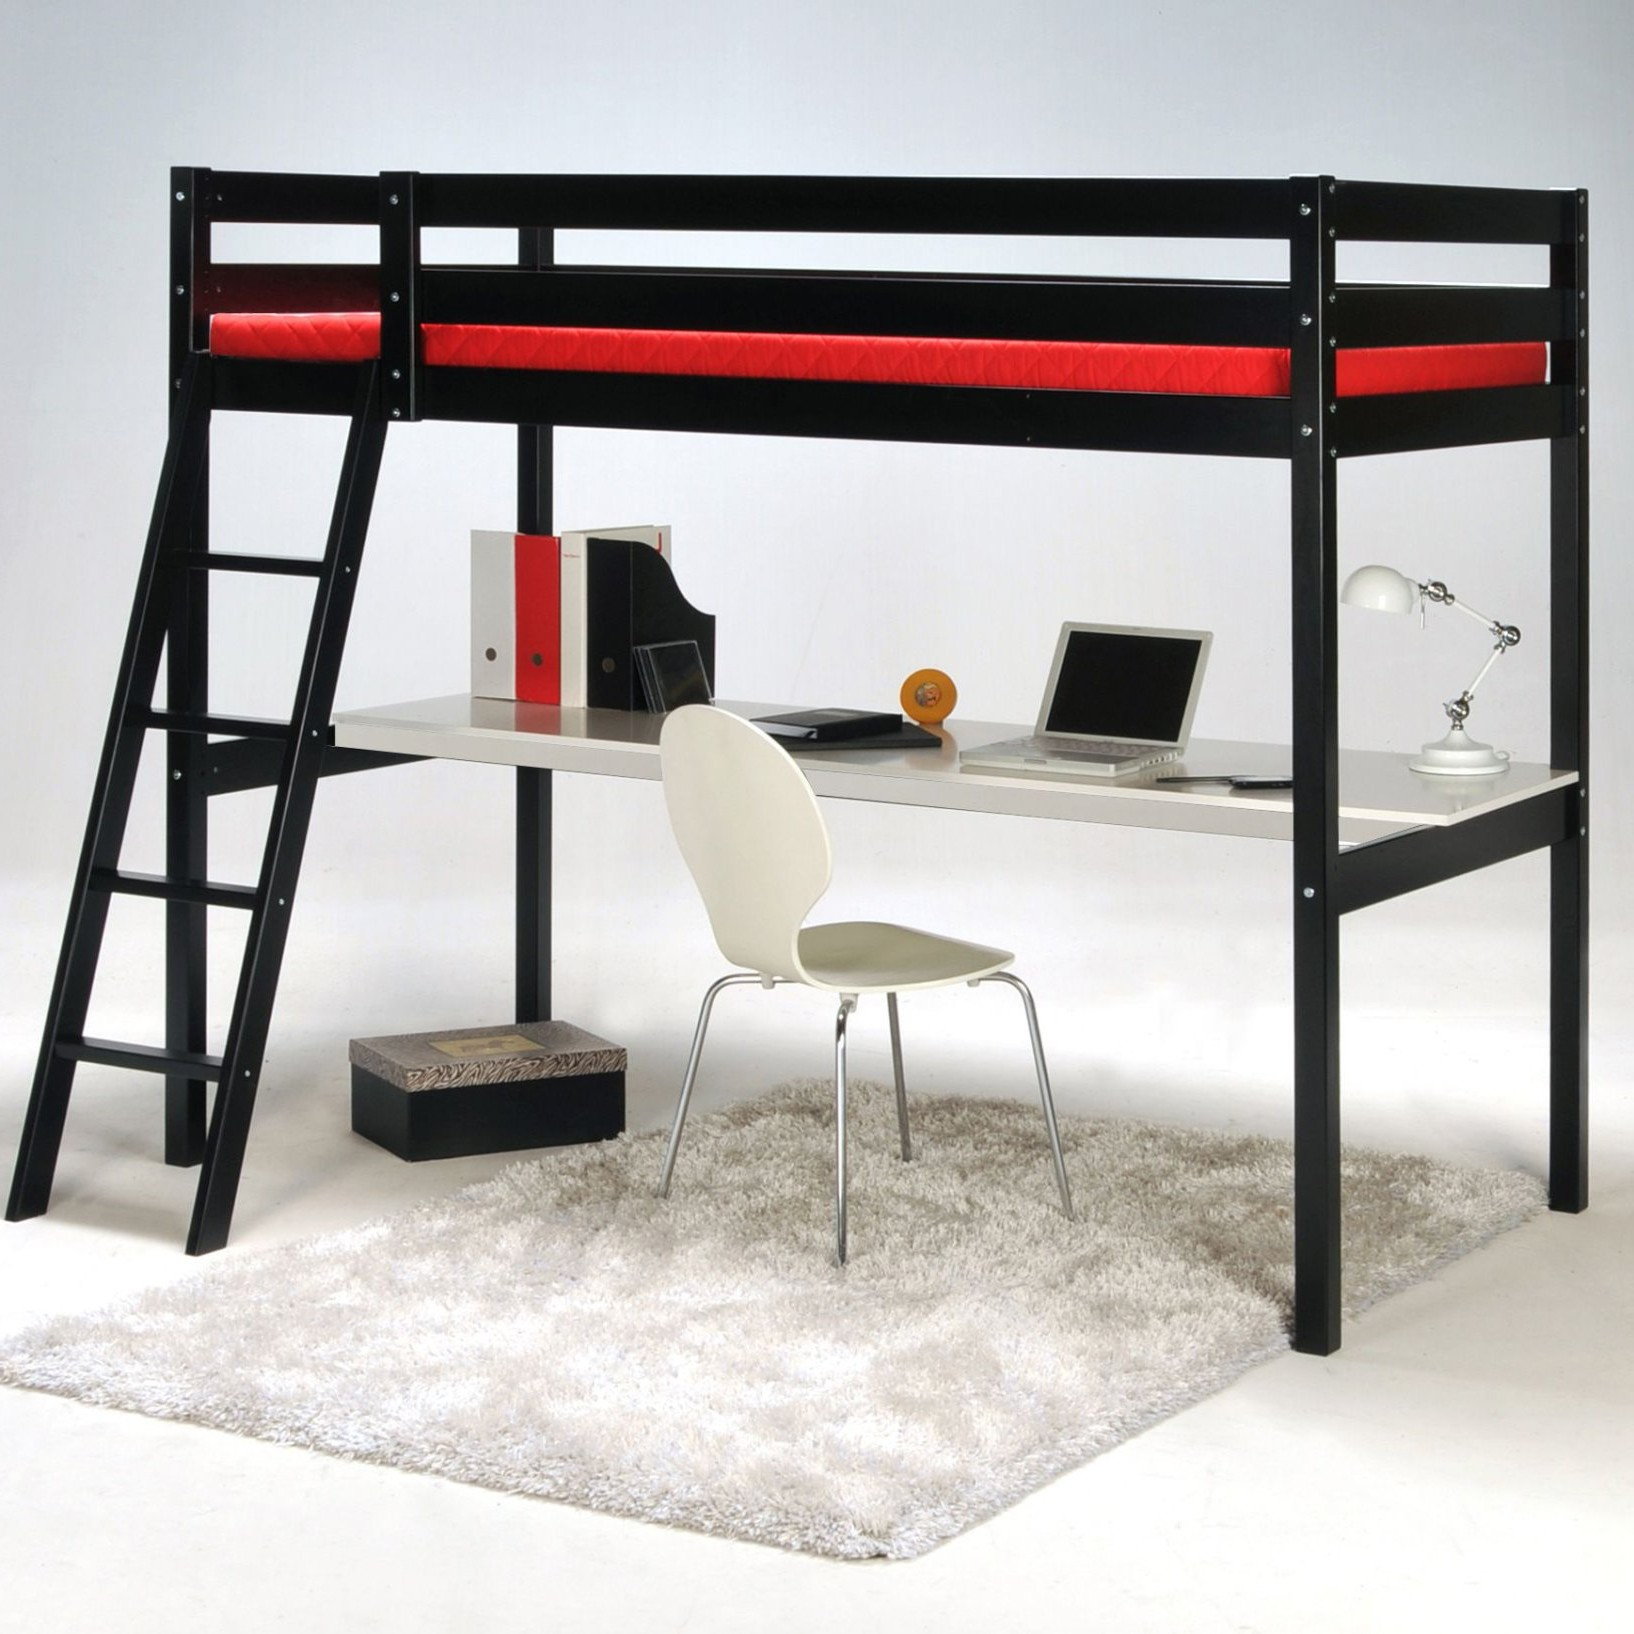 lit mezzanine 2 places avec bureau en bois bureau. Black Bedroom Furniture Sets. Home Design Ideas